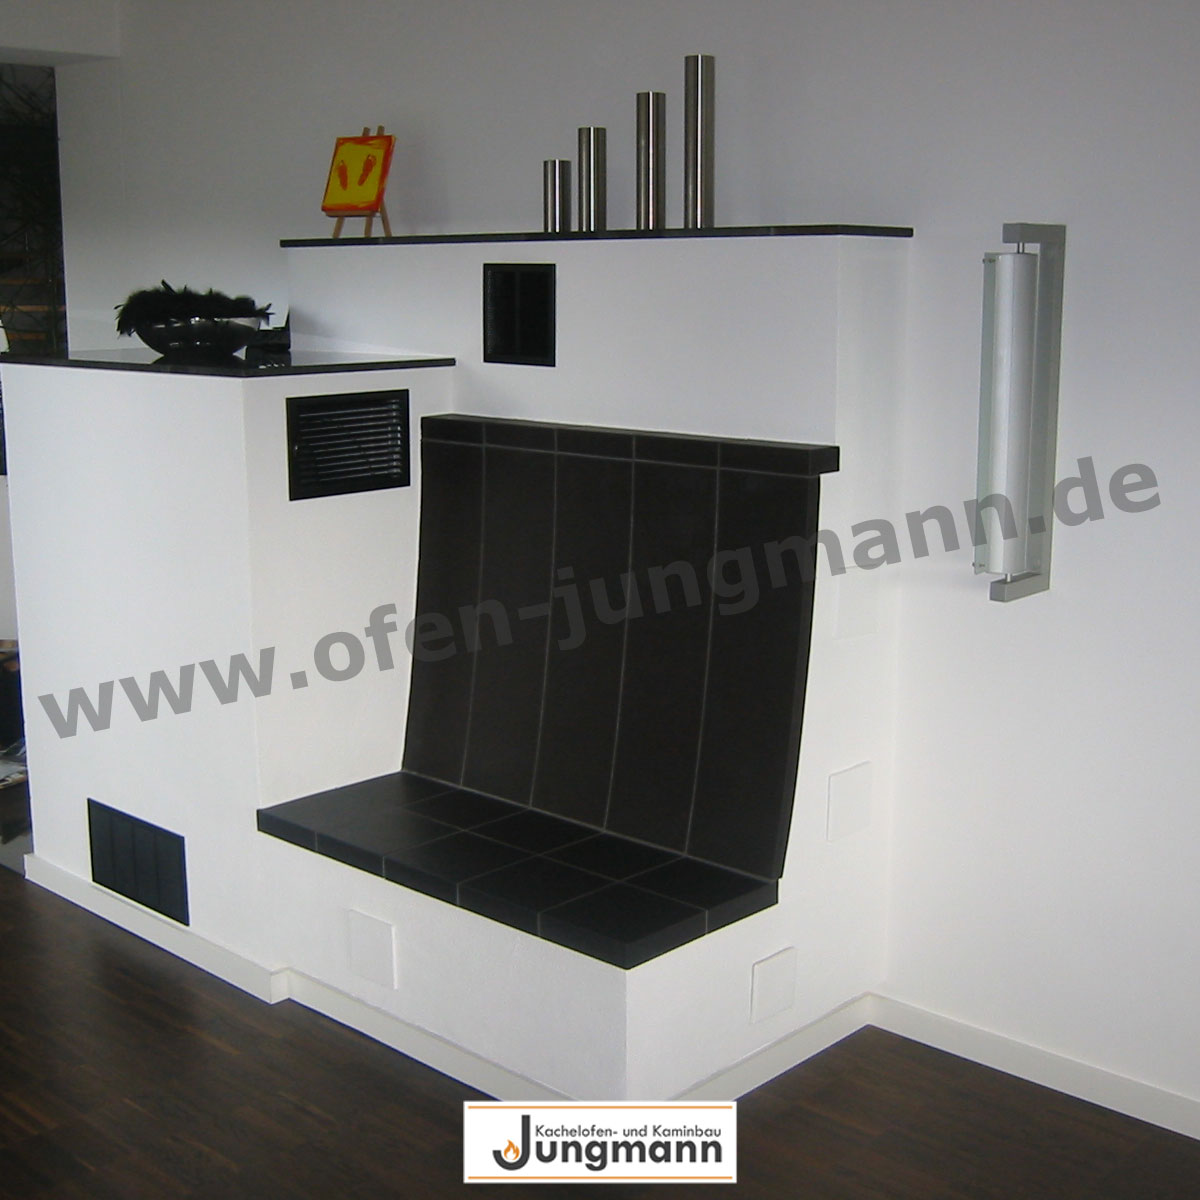 referenzen f r kamine kaminbau ofen kaminofen in delbr ck kachelofen jungmann. Black Bedroom Furniture Sets. Home Design Ideas